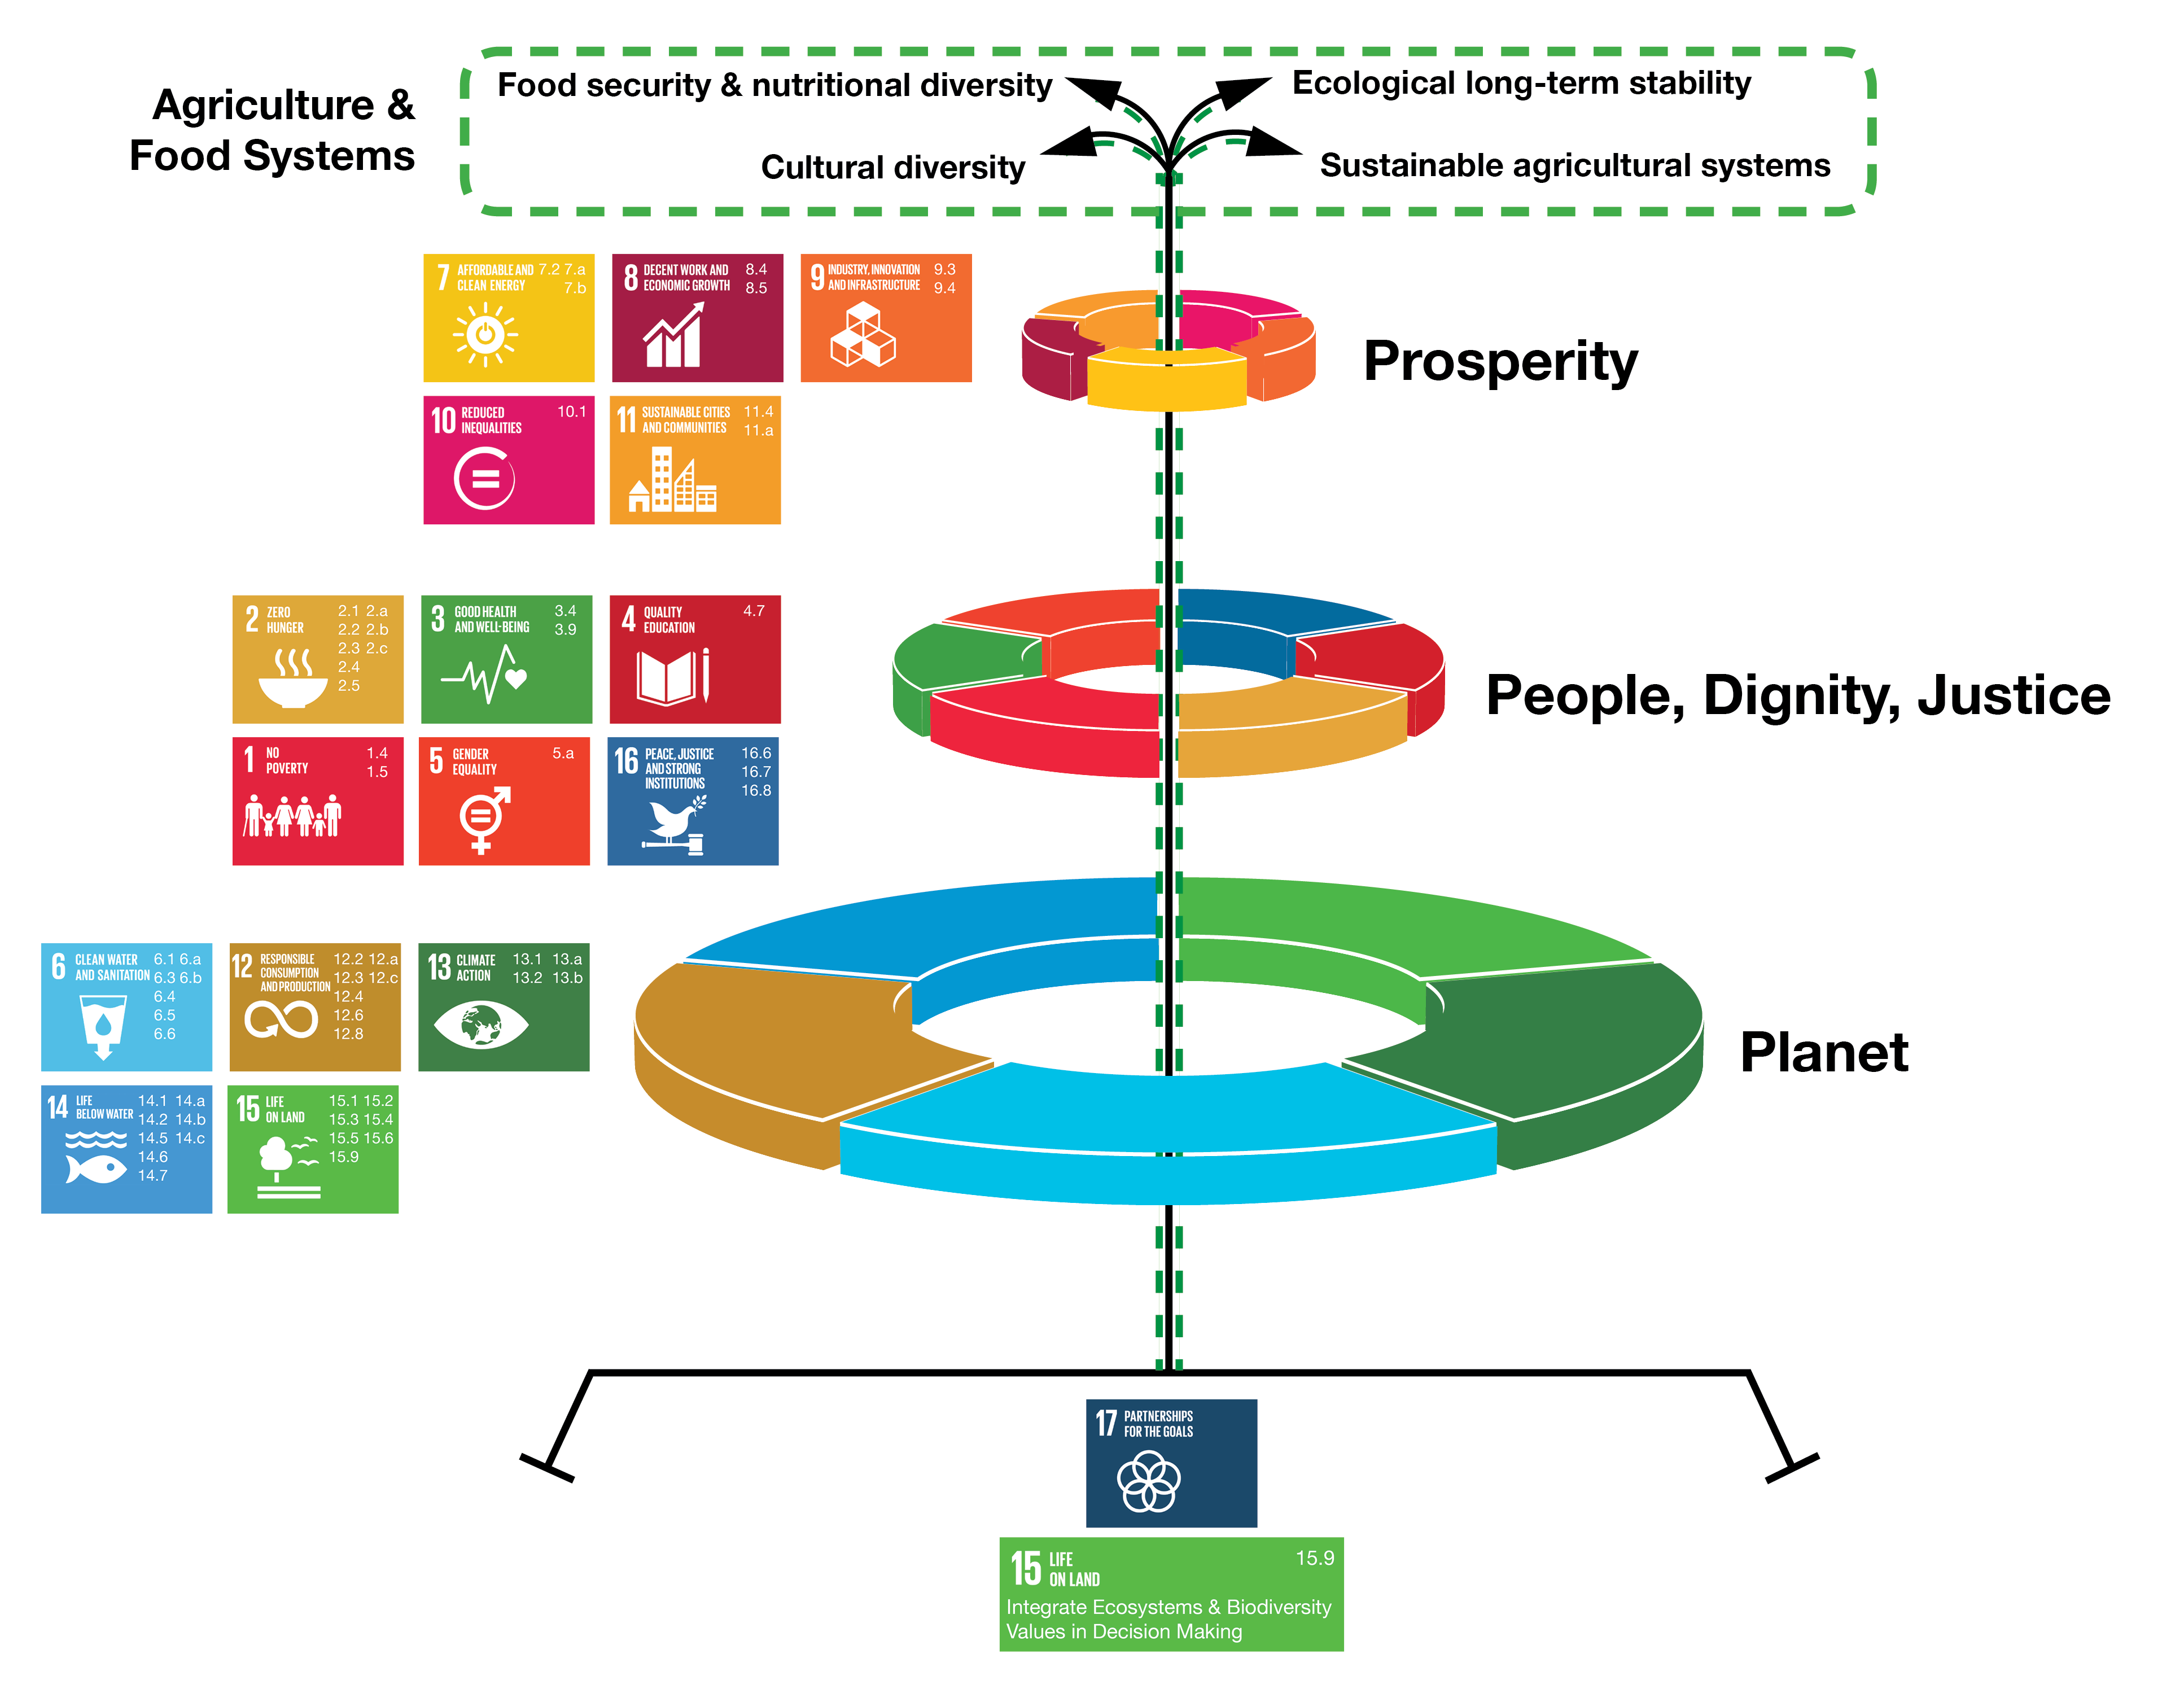 SDG targets related to food systems - TEEB